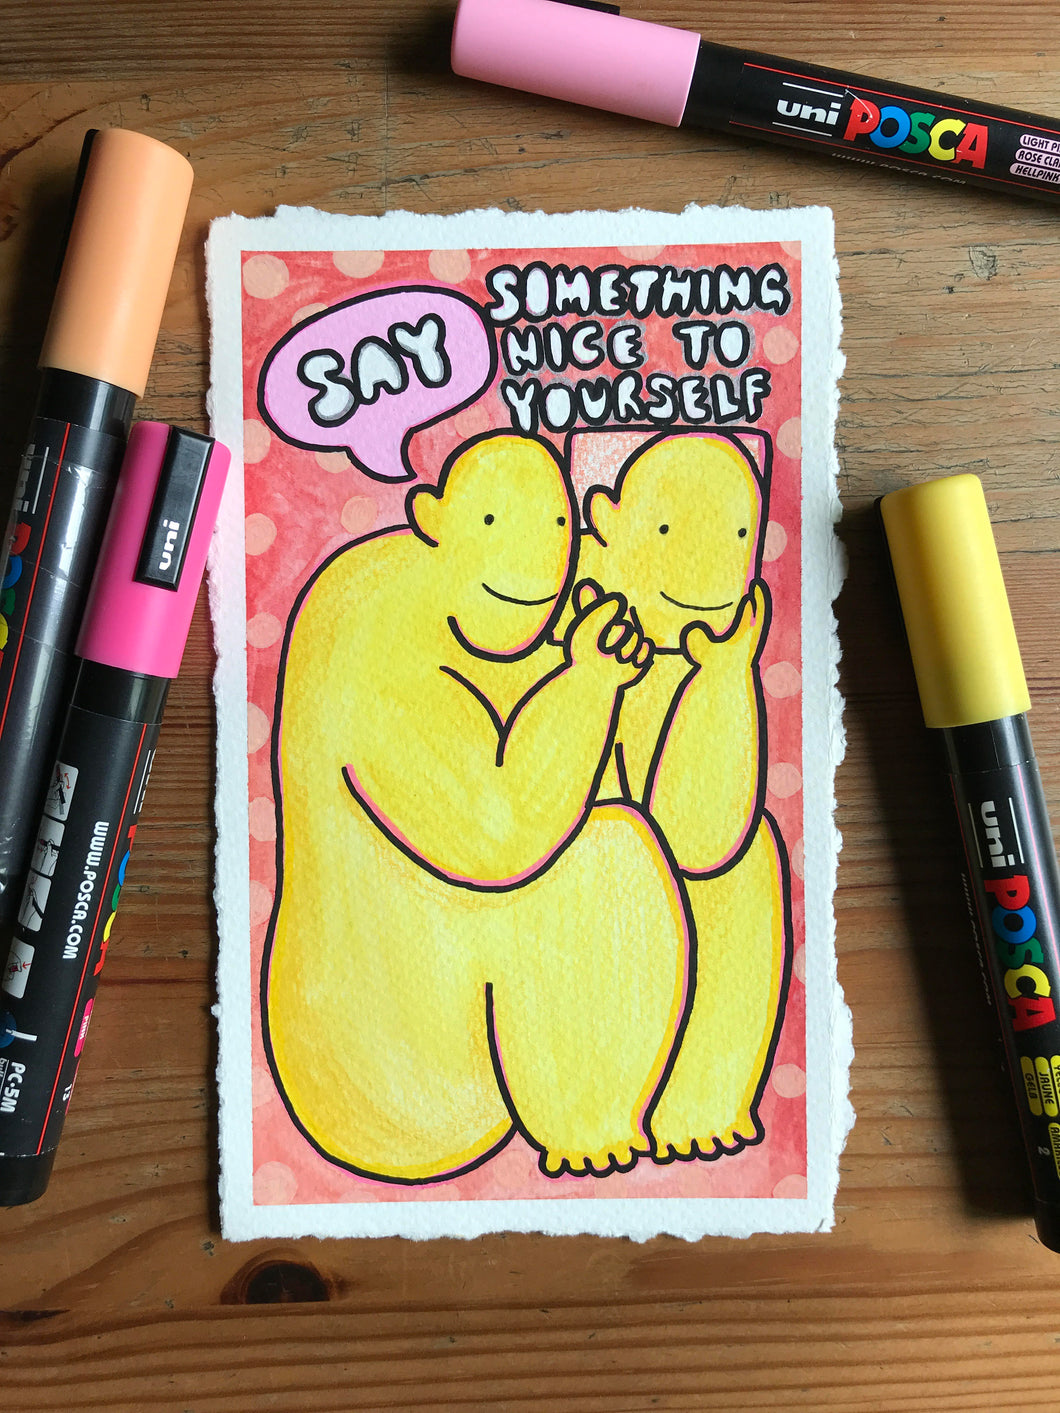 Say Something Nice To Yourself (Original Painting)